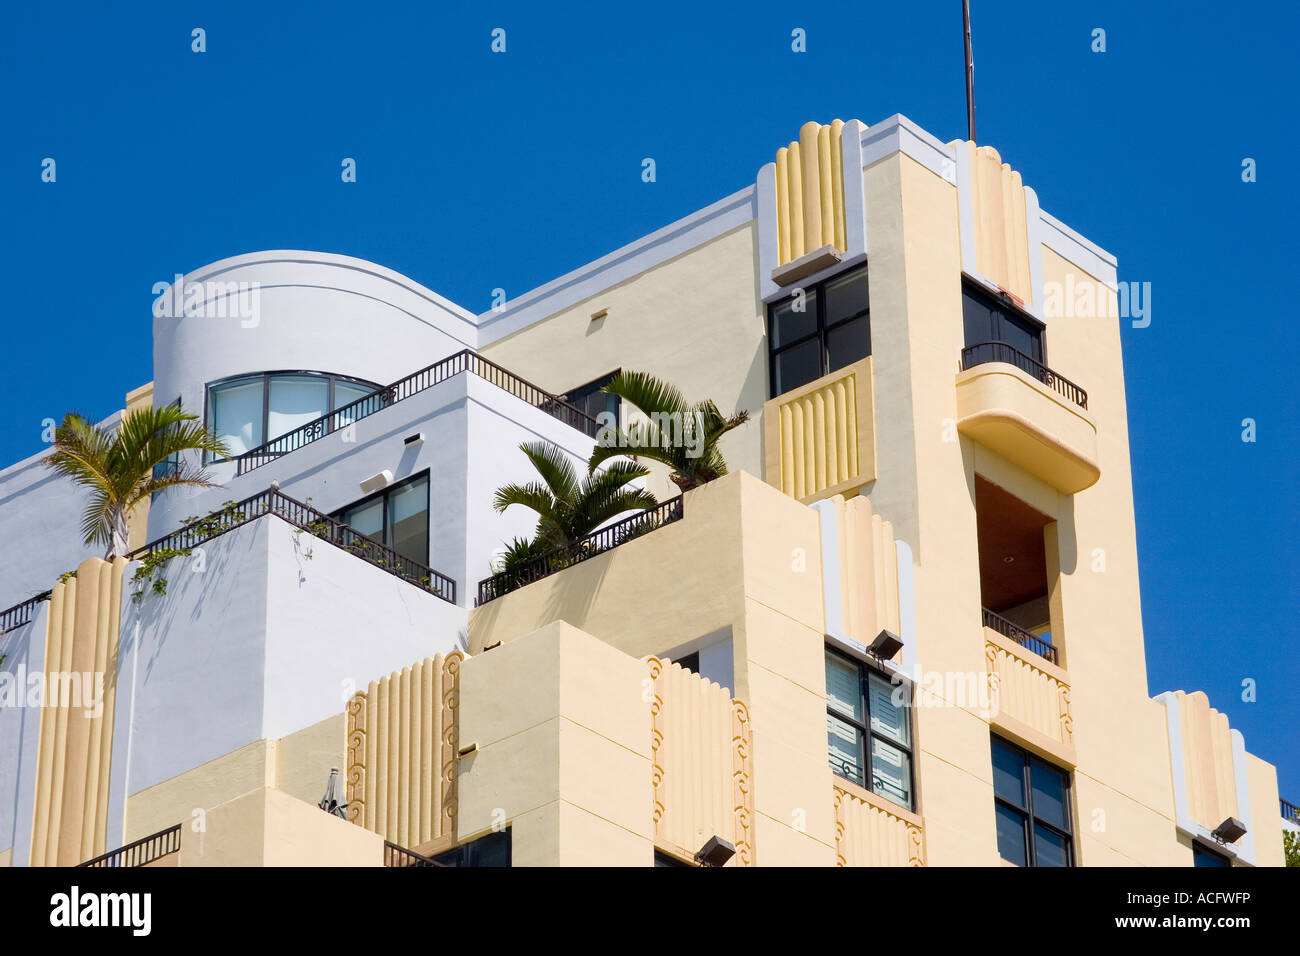 Art deco style architecture - Balconies At Top Of Hotel In Art Deco Architecture Style On Ocean Drive In Art Deco District Of South Beach Miami Florida